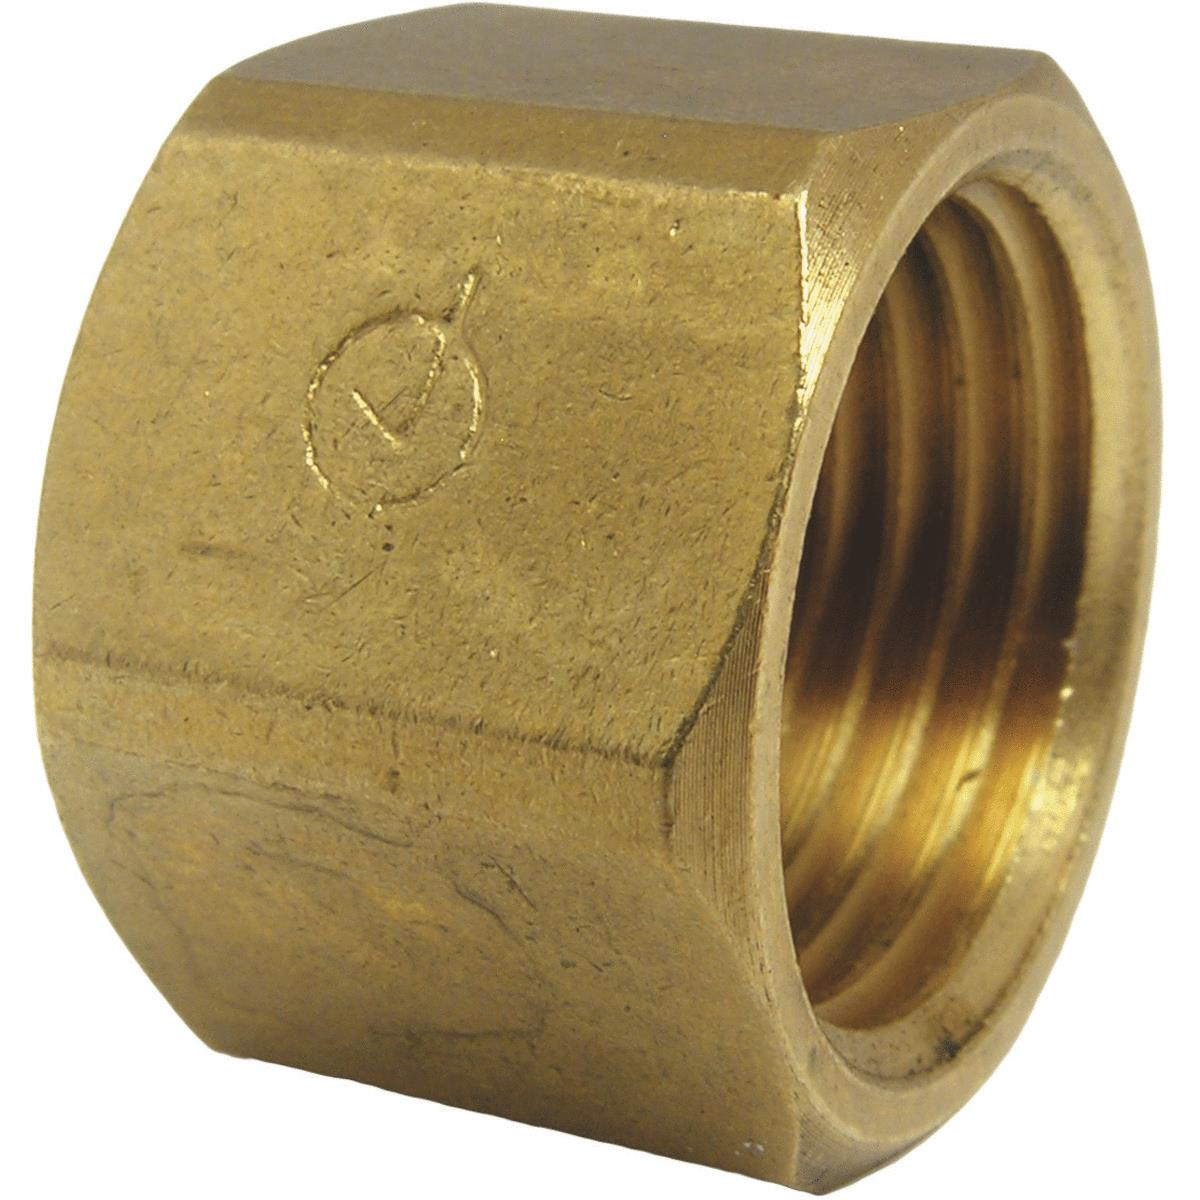 Lasco Red Brass Threaded Pipe Cap